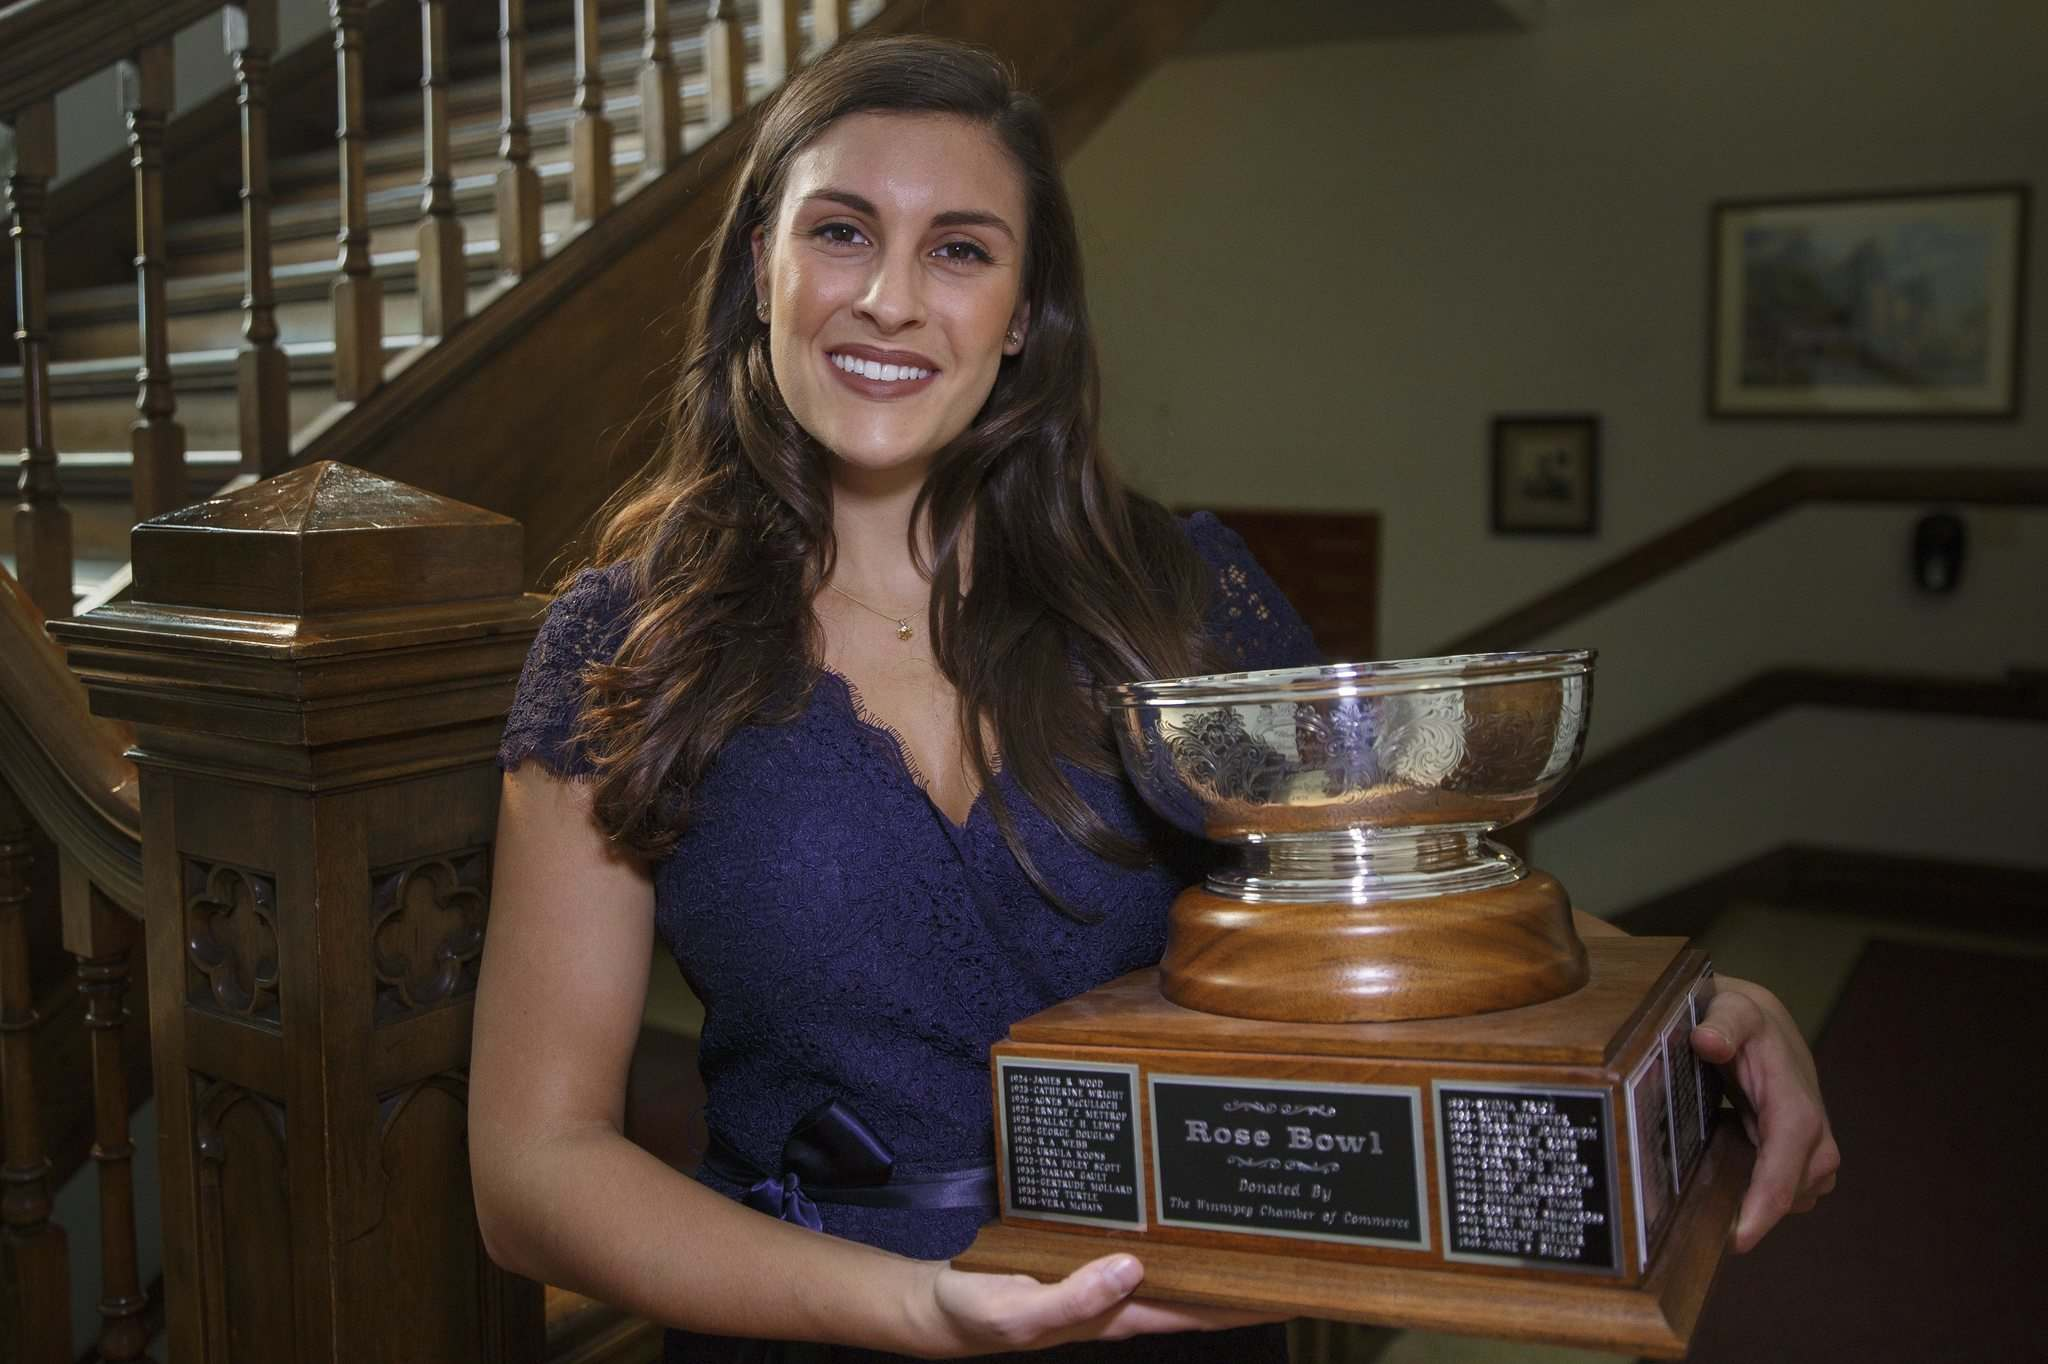 MIKE DEAL / WINNIPEG FREE PRESS</p><p>Emma Johnson holds the Rose Bowl trophy, which goes to the best vocal performance of the Winnipeg Music Festival.</p>